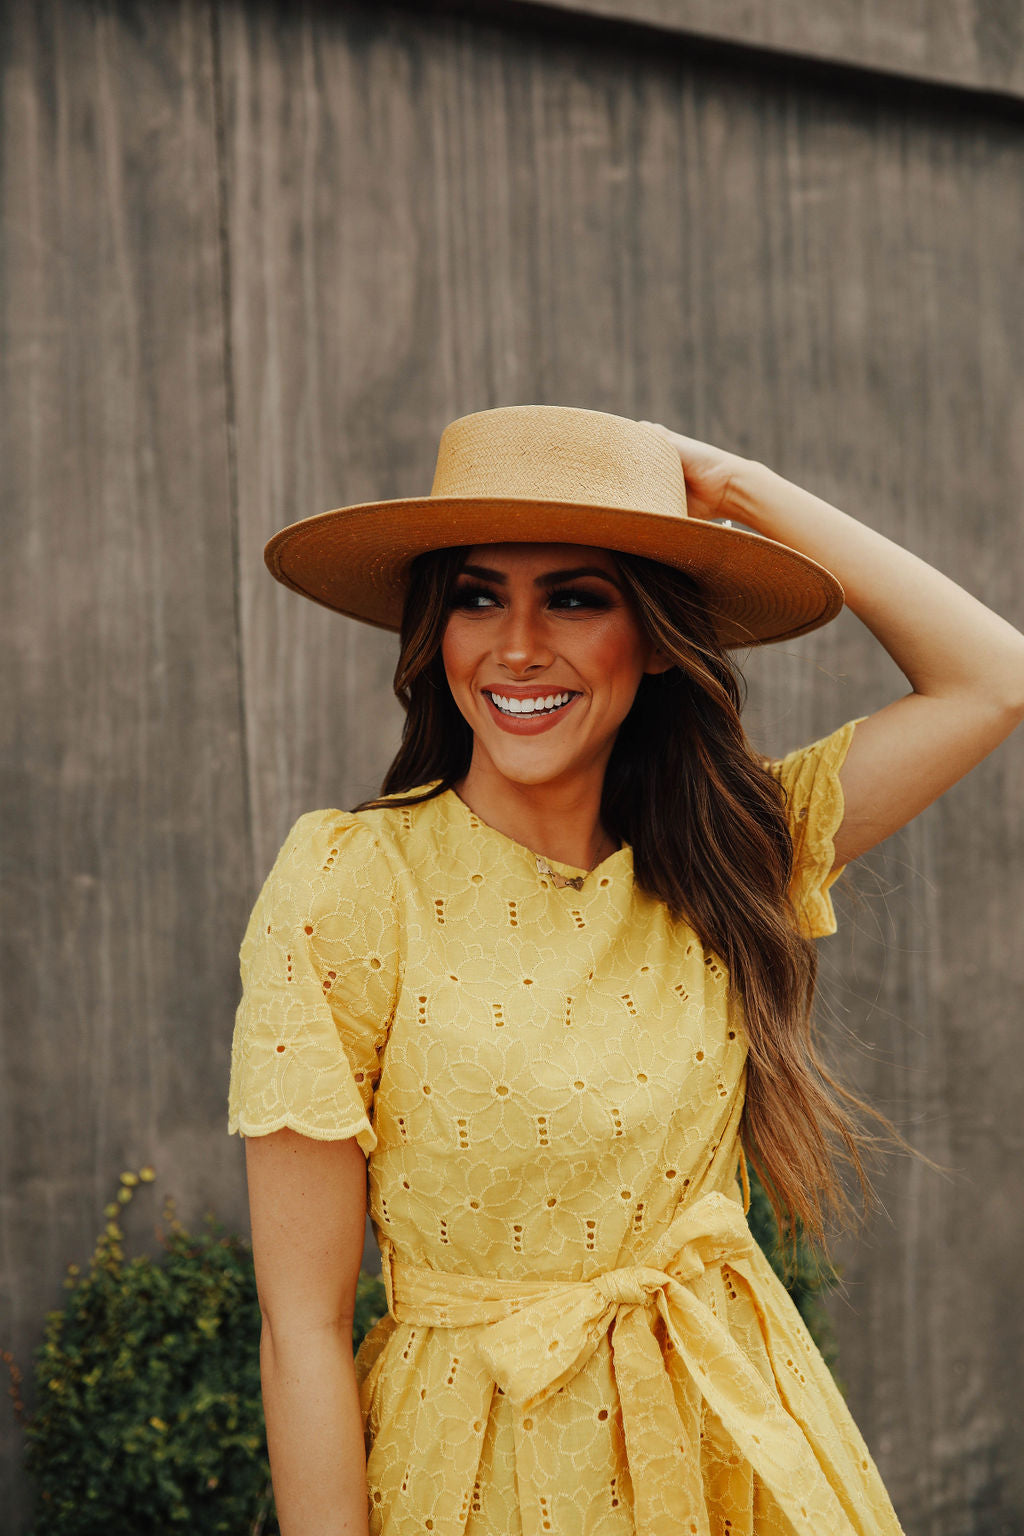 THE DAYTONA LACE DRESS IN MUSTARD